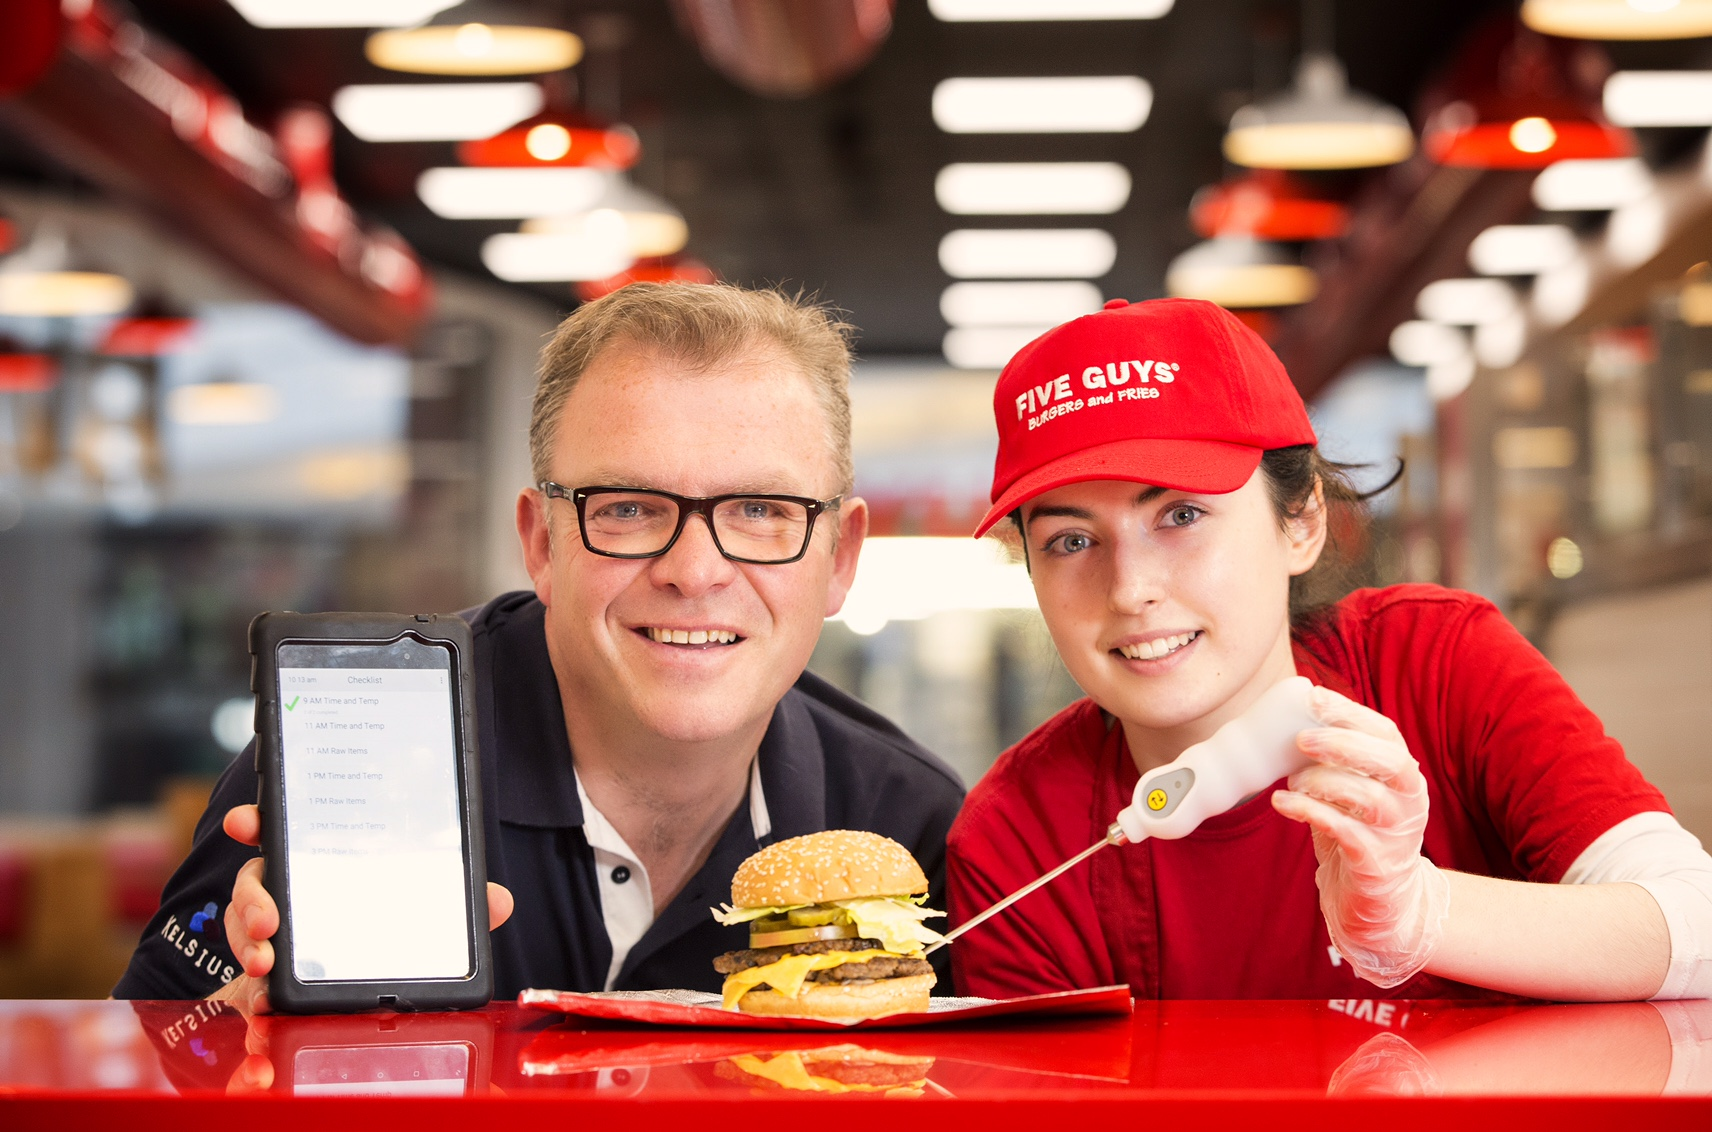 Paddy Hearty from Kelsius is pictured with Caroline Hutchinson from Five Guys.